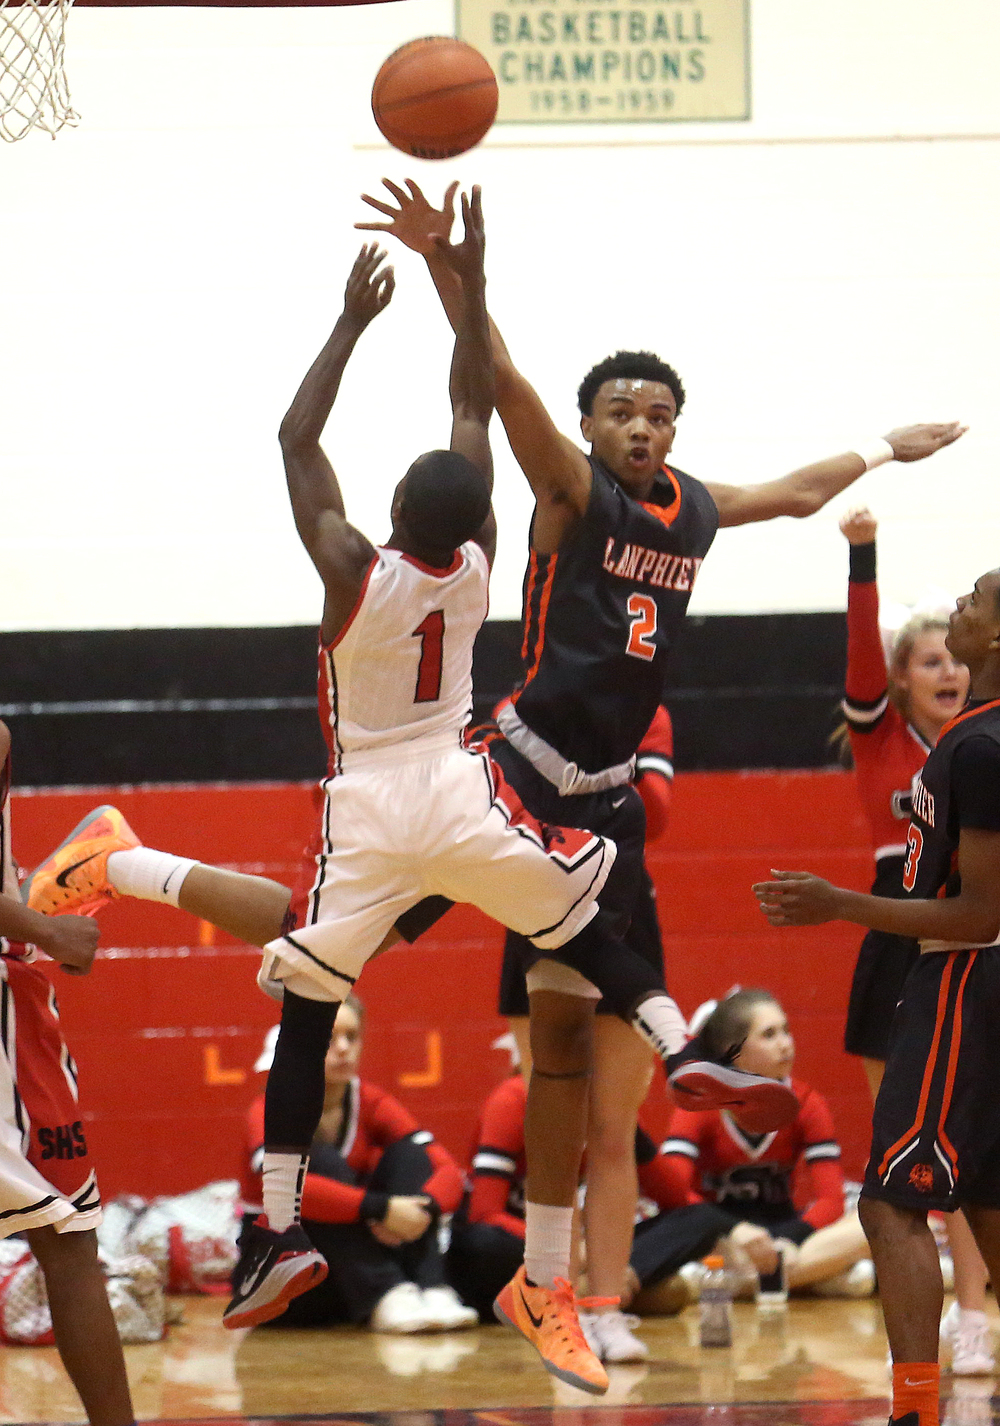 Springfield player Taivon Kincaid at left and Lanphier's Cardell McGee battle for the ball. Lanphier defeated Springfield High School 64-54 in boys basketball action at Springfield's Willard Duey Gym on Tuesday evening, Feb. 10, 2015. David Spencer/The State Journal-Register